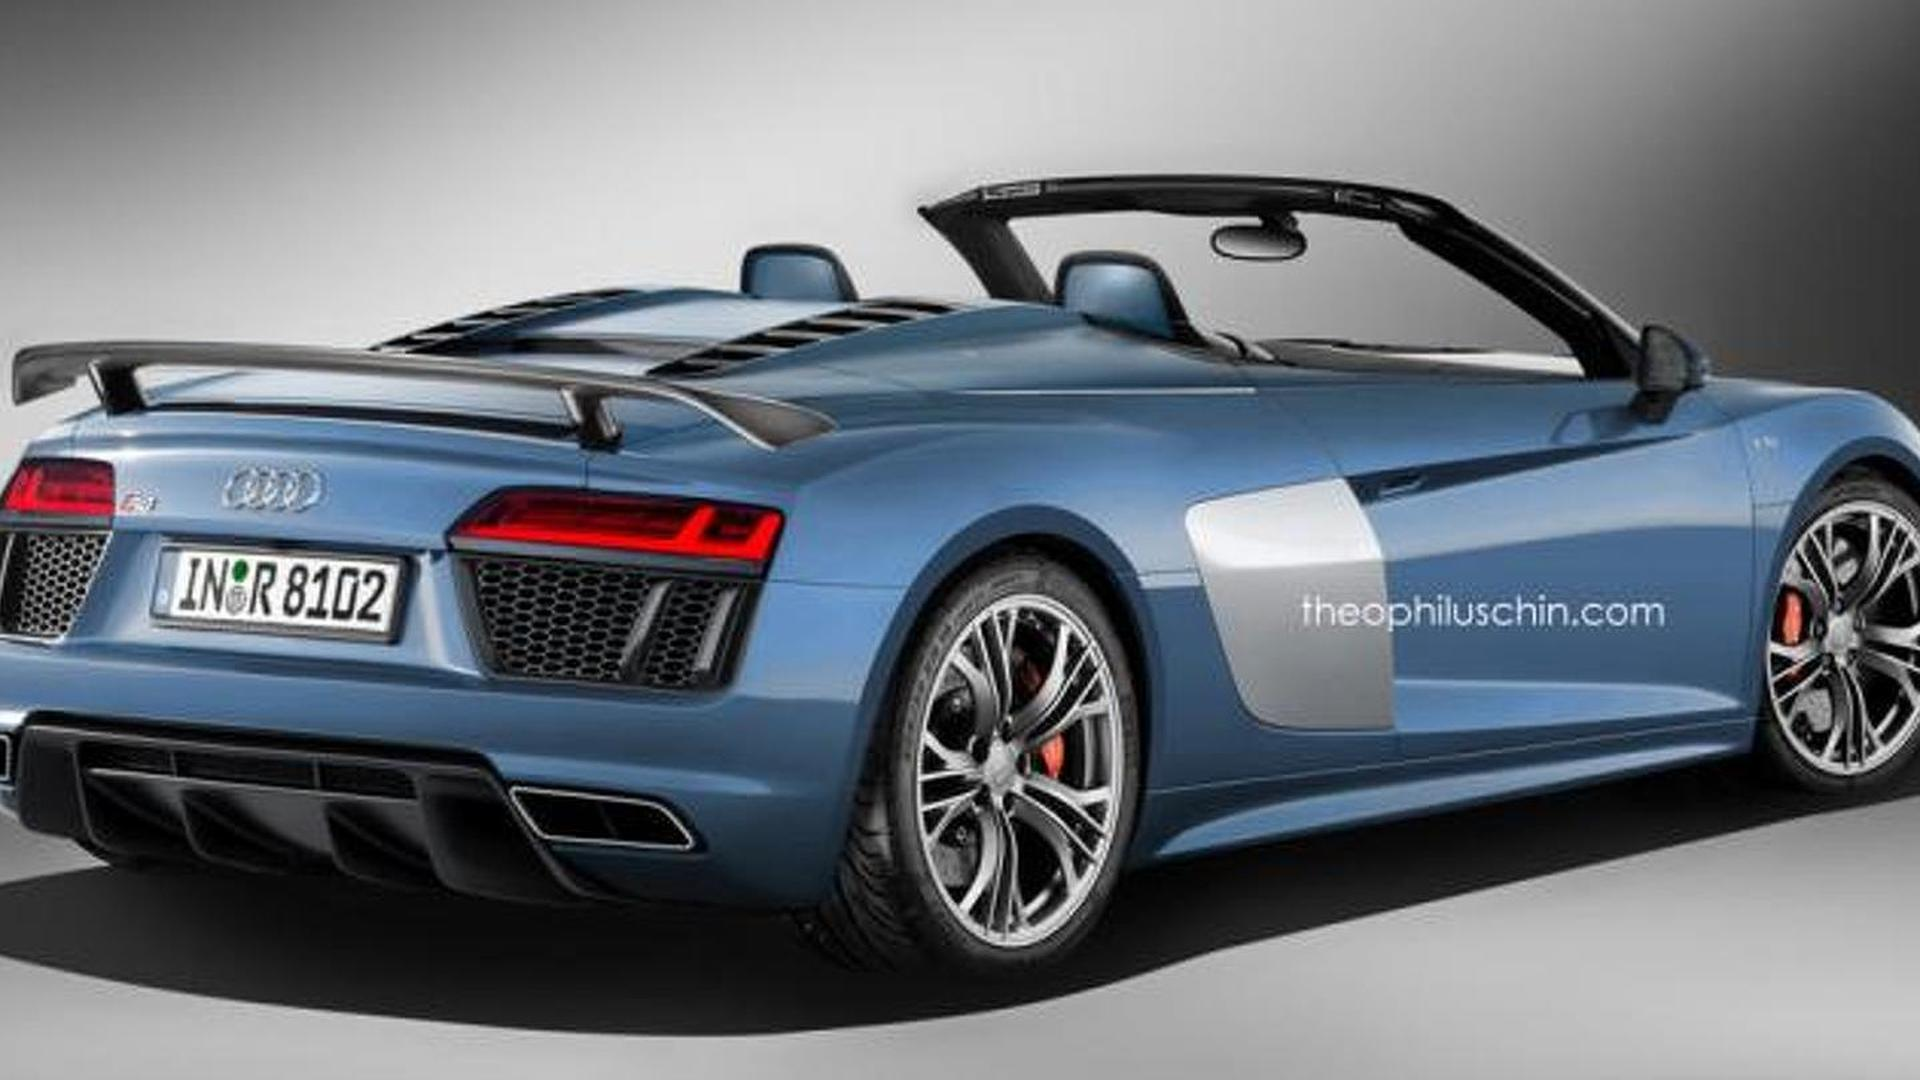 Audi R8 V10 Plus Spyder renders show what to expect